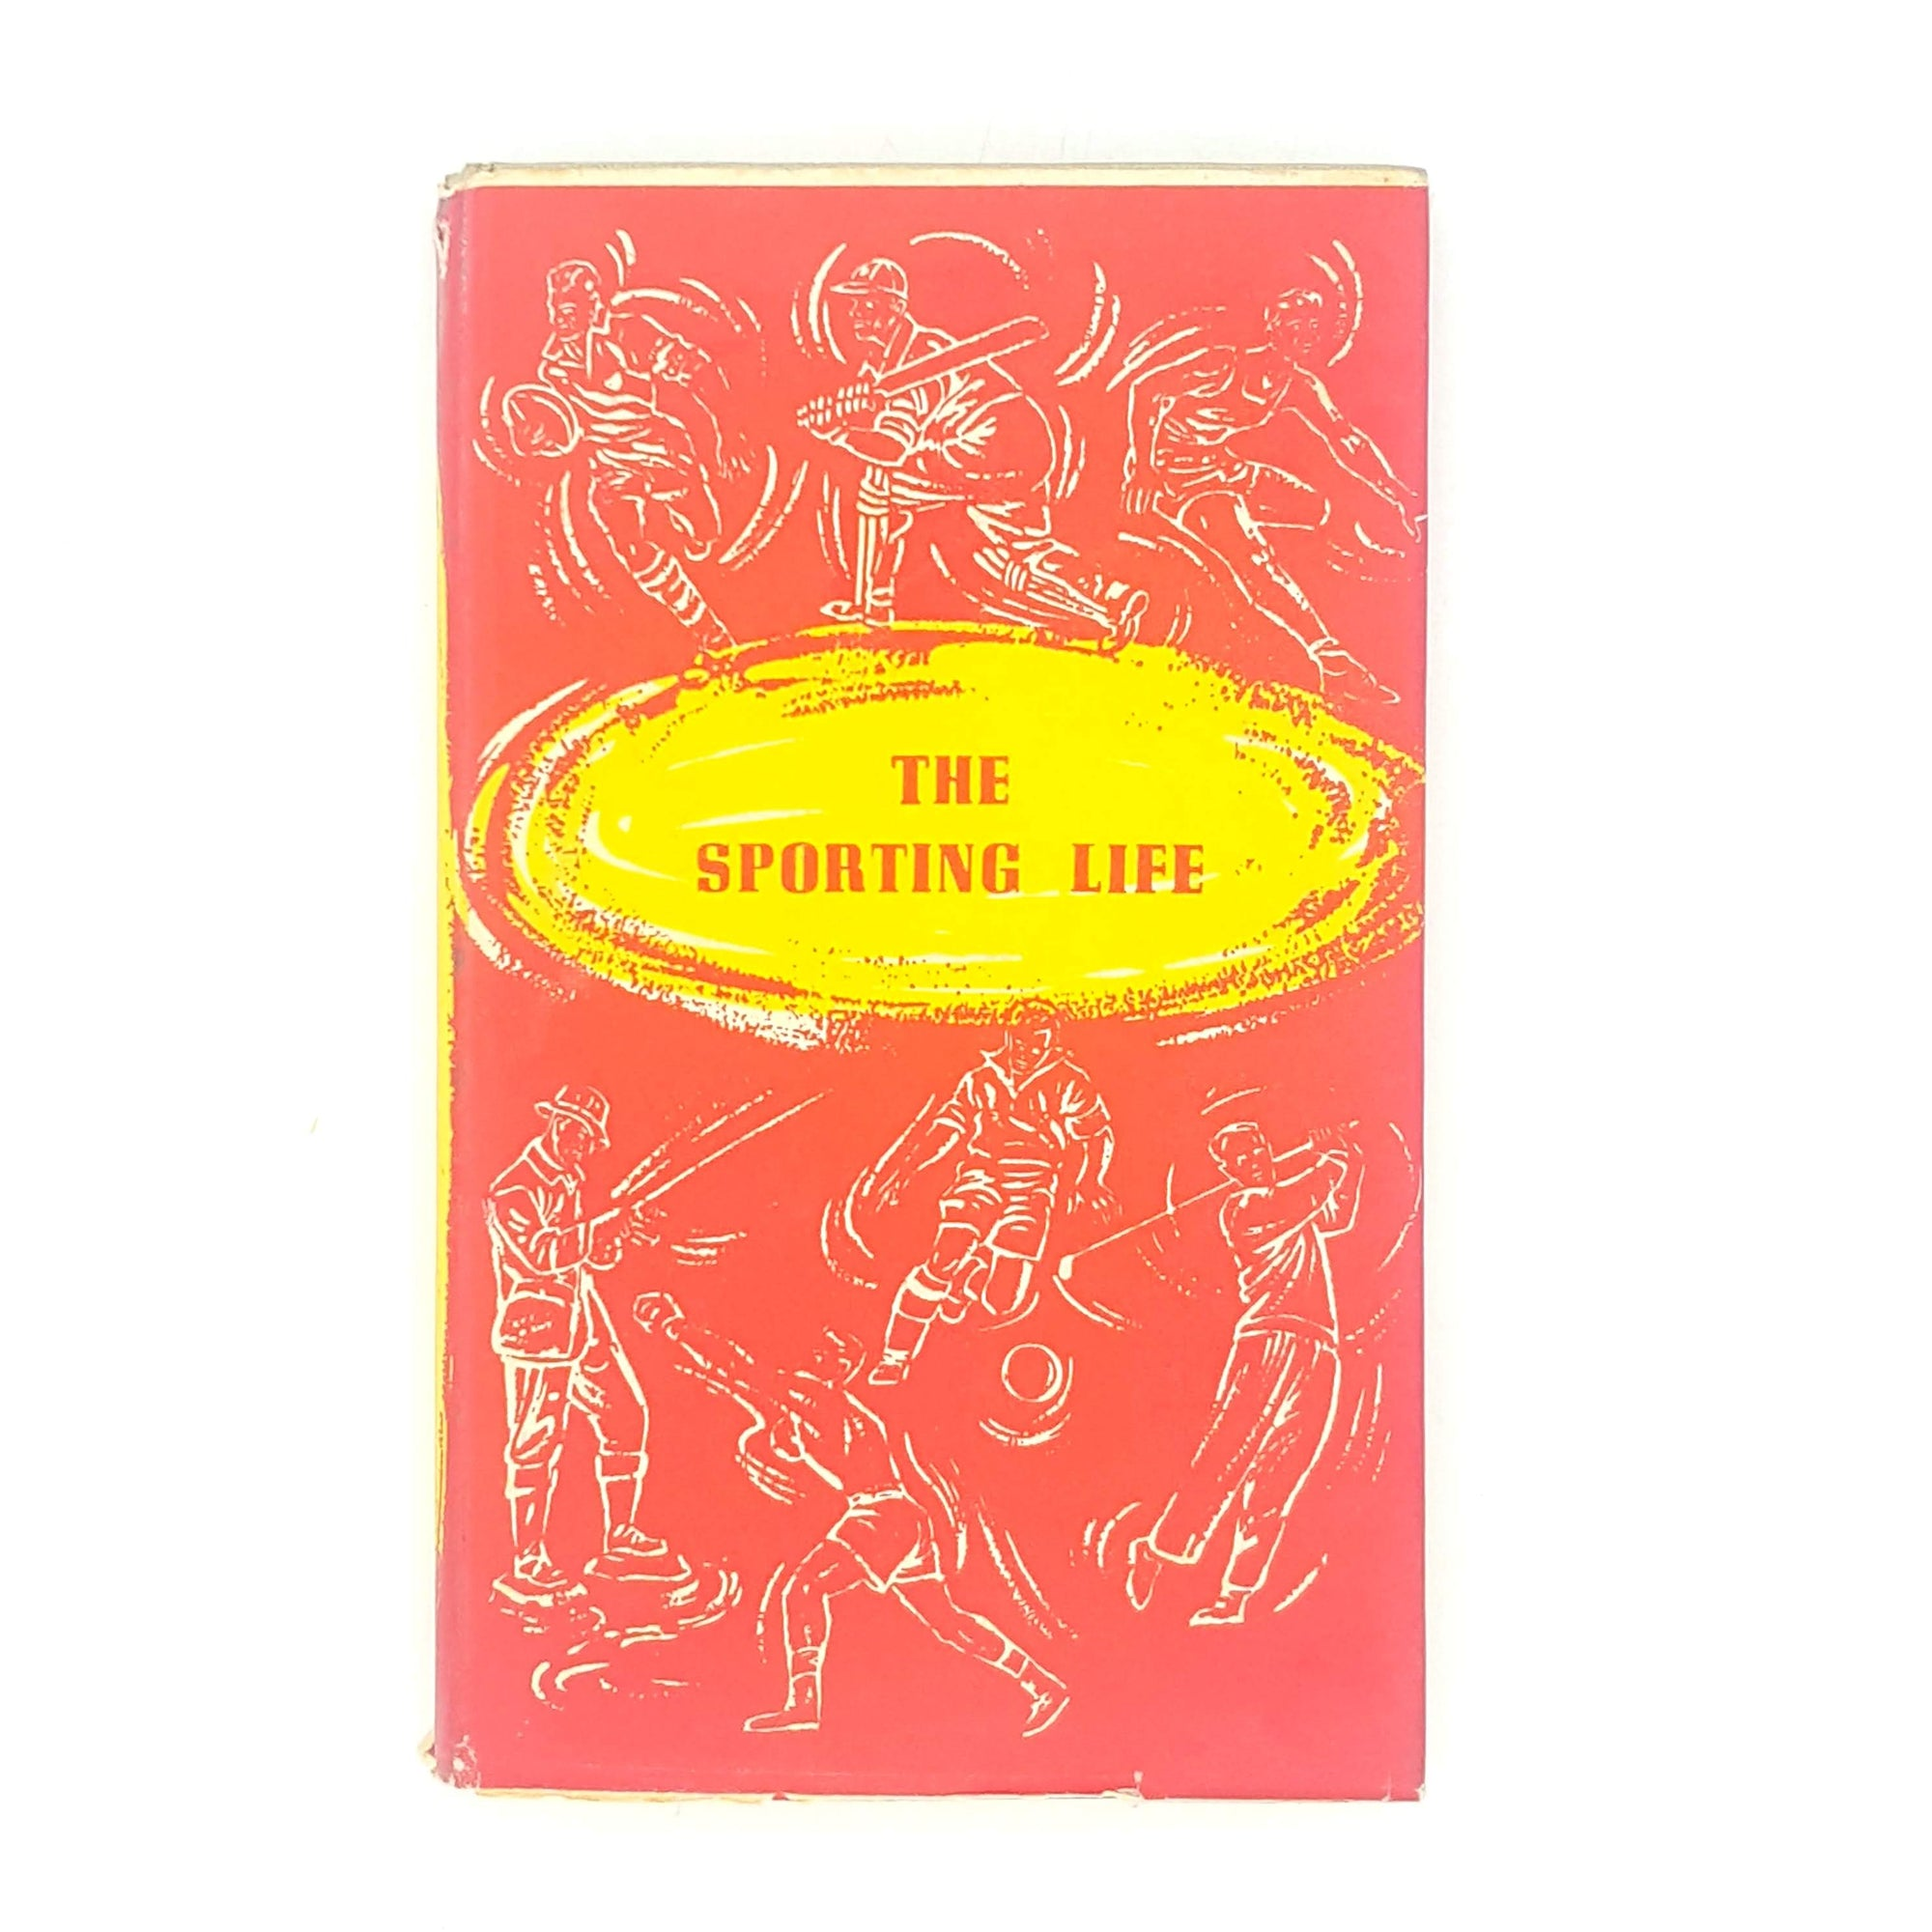 red-classic-sportsmans book-club-sport-antique-1956-books-patterned-vintage-the-sporting-life-country-house-library-old-thrift-decorative-